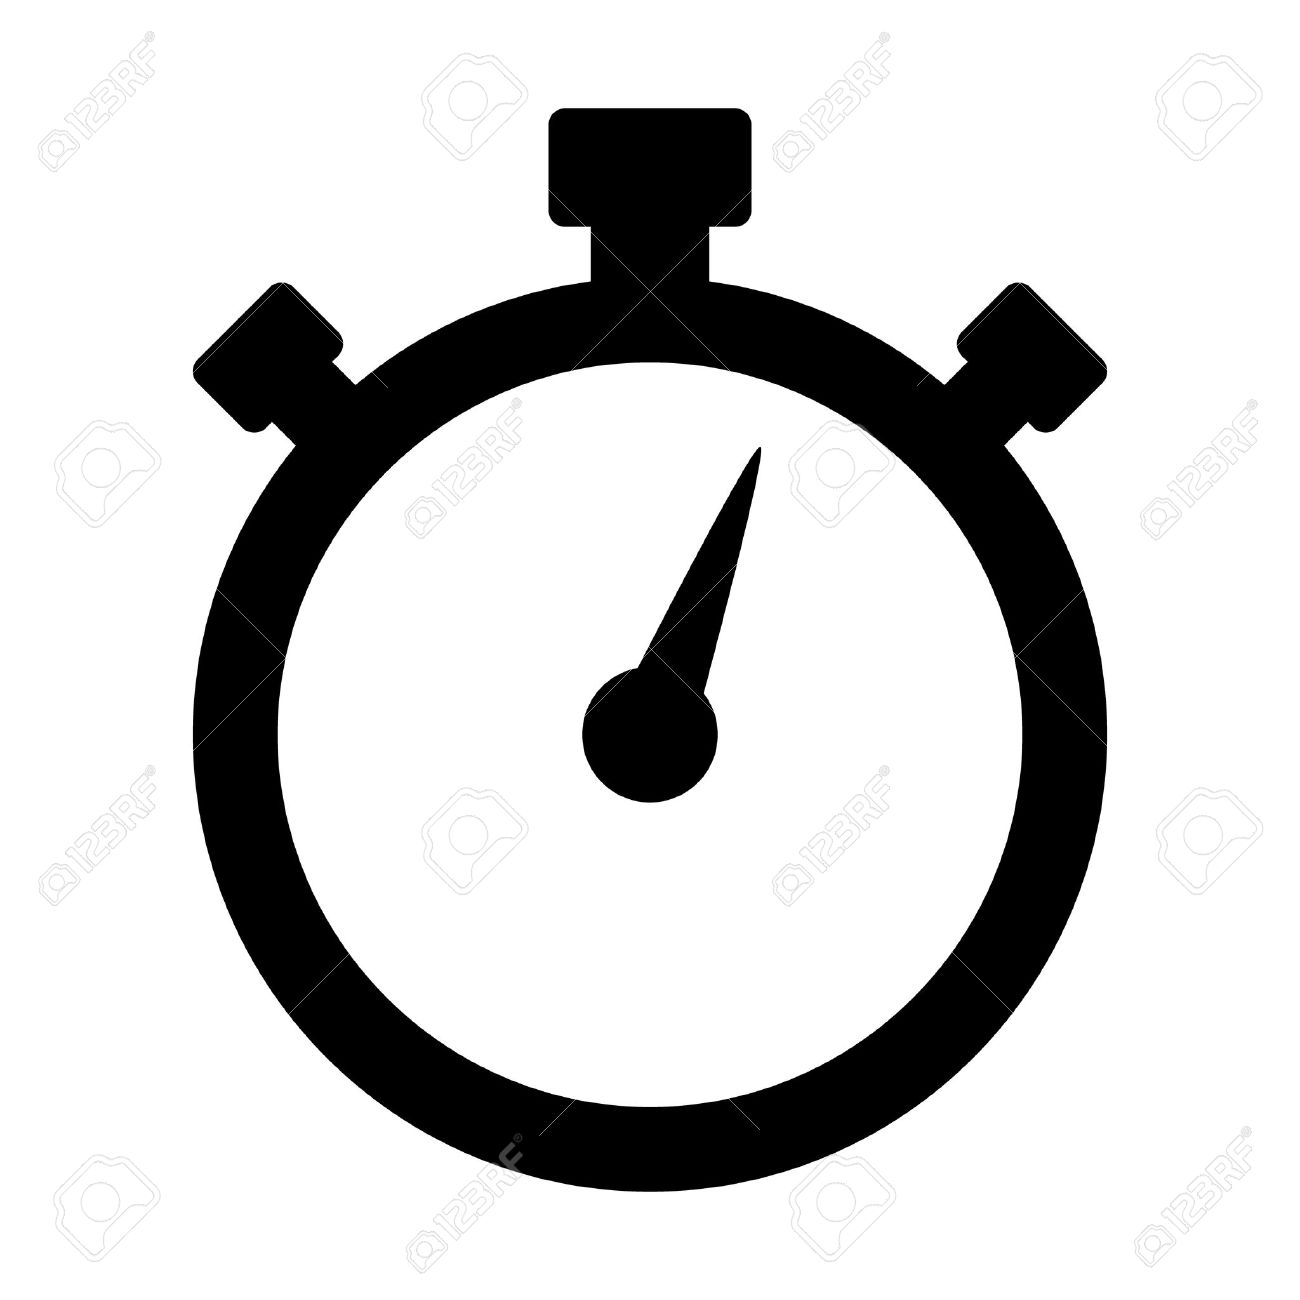 Stopwatch timer flat icon for apps and websites - 49796812